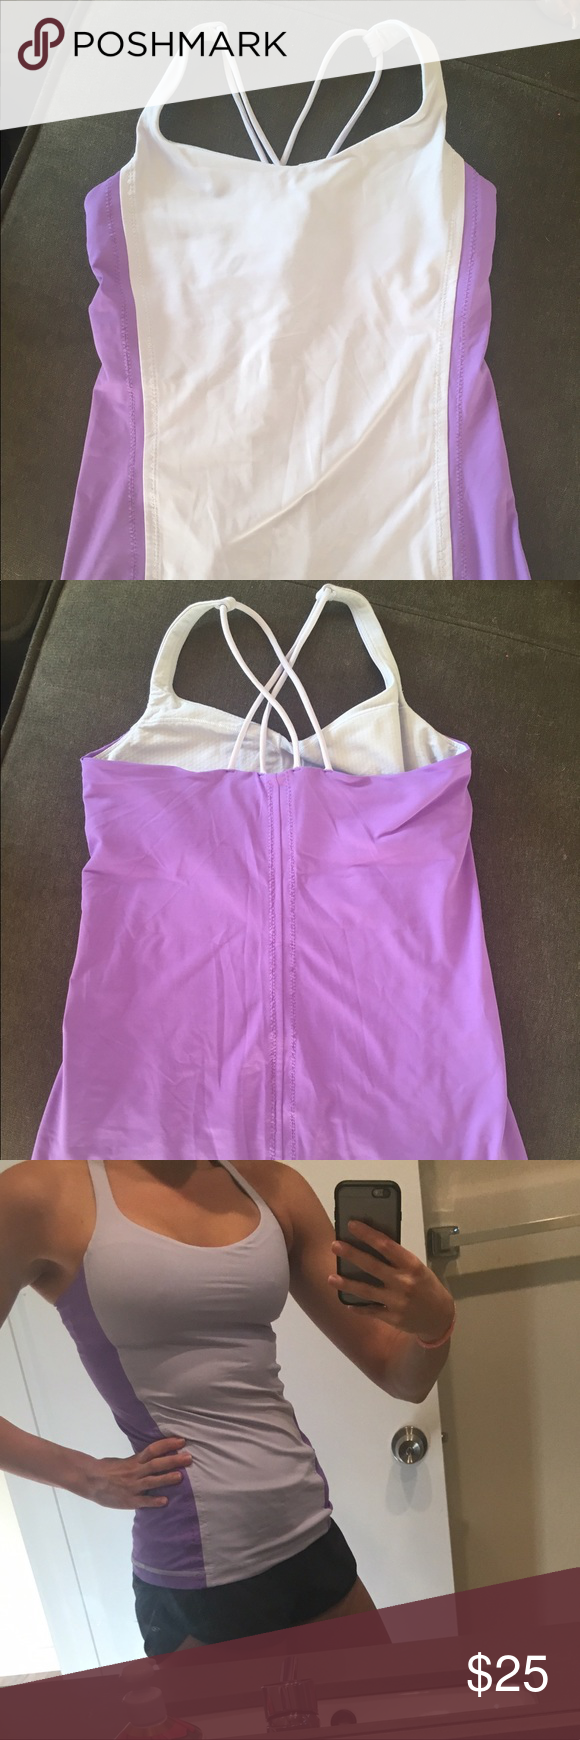 Lululemon Tank Size 6. Gently worn. In perfect condition. Two shaves of purple. Built in bra lululemon athletica Tops Tank Tops